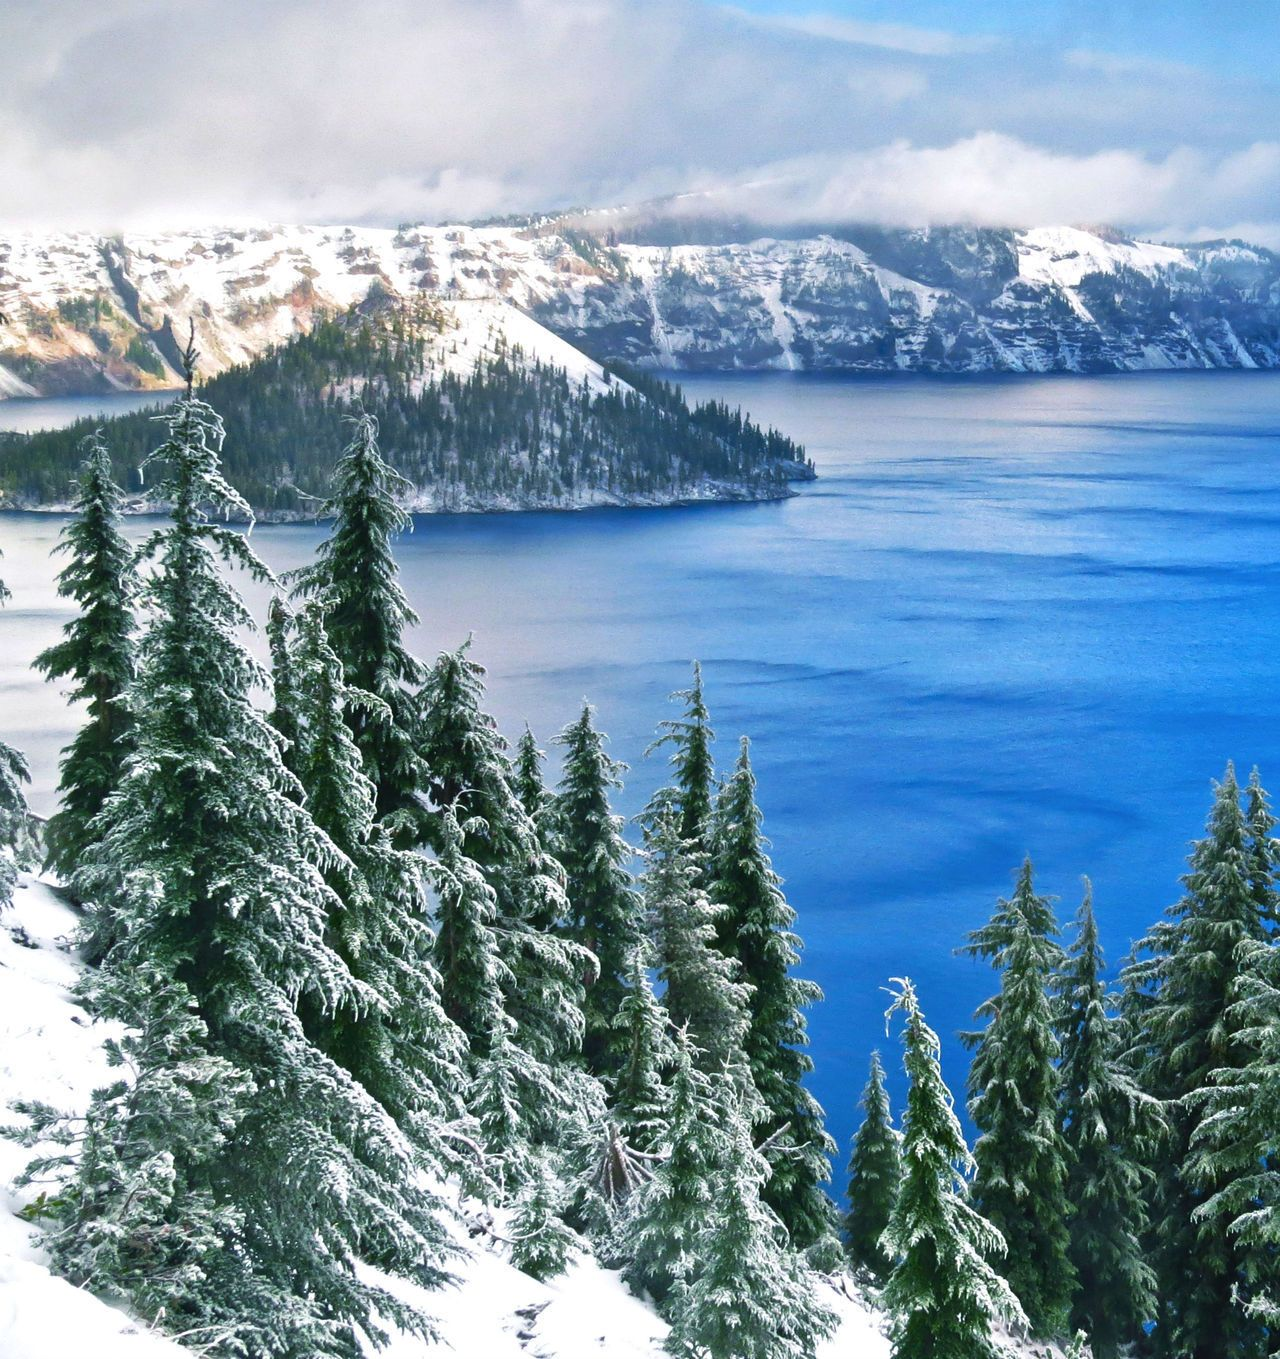 Crater Lake National Park in Oregon is not only one of the most beautiful places in the country but